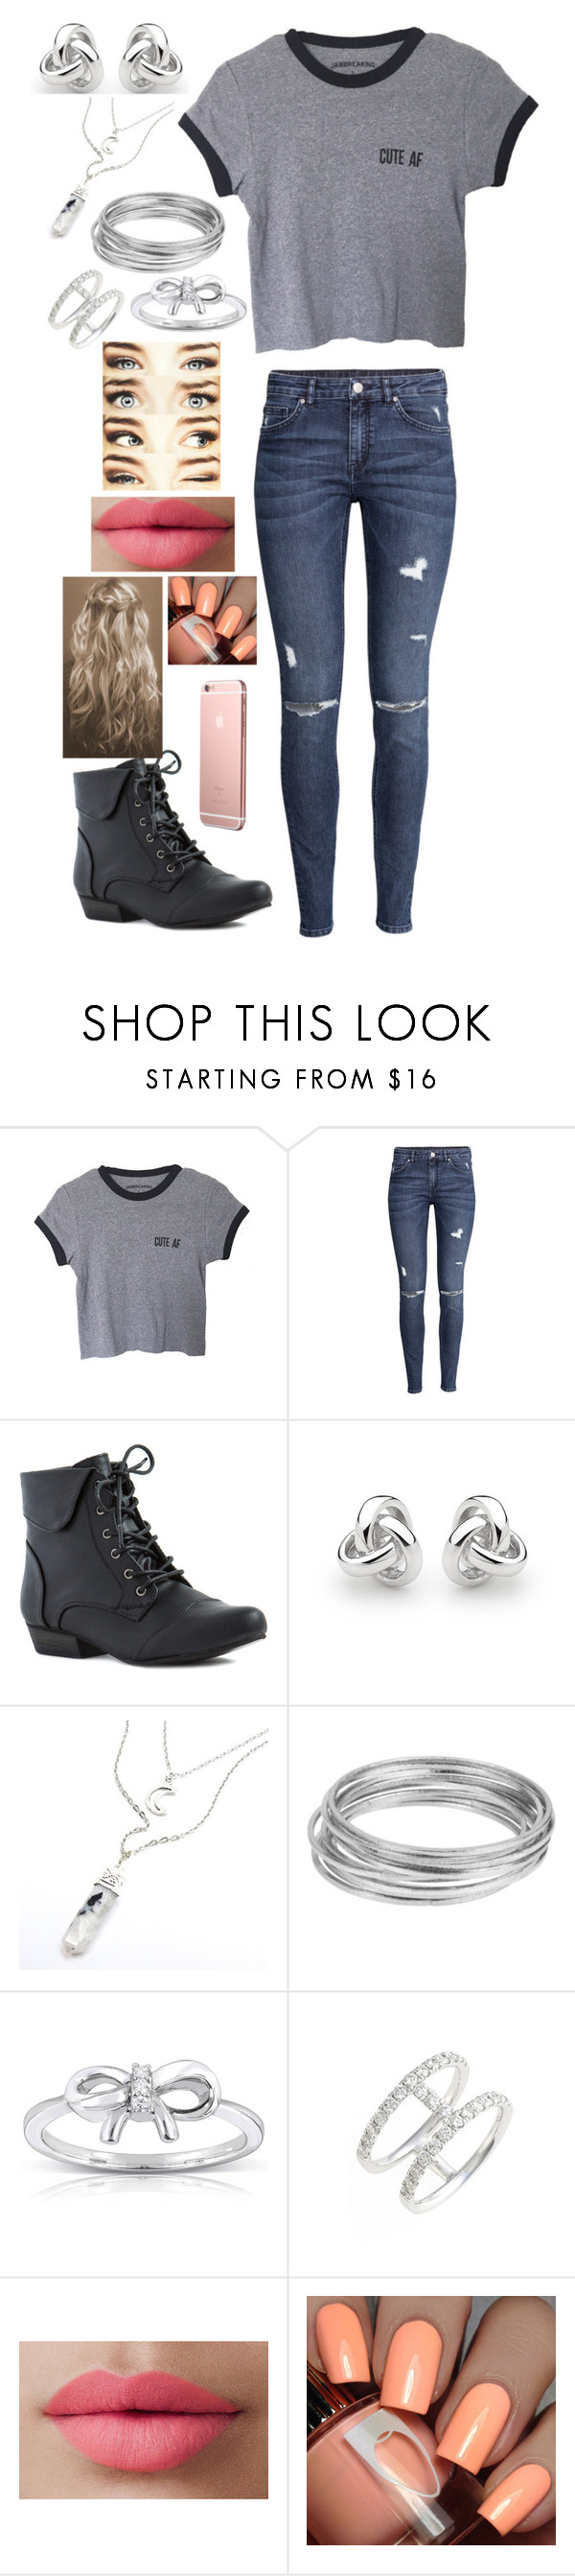 """""""Madison Alena Levy-Unexpected Visitor"""" by msmarvel70 ❤ liked on Polyvore featuring H&M, Georgini, Worthington, Kobelli, Bony Levy and LORAC"""